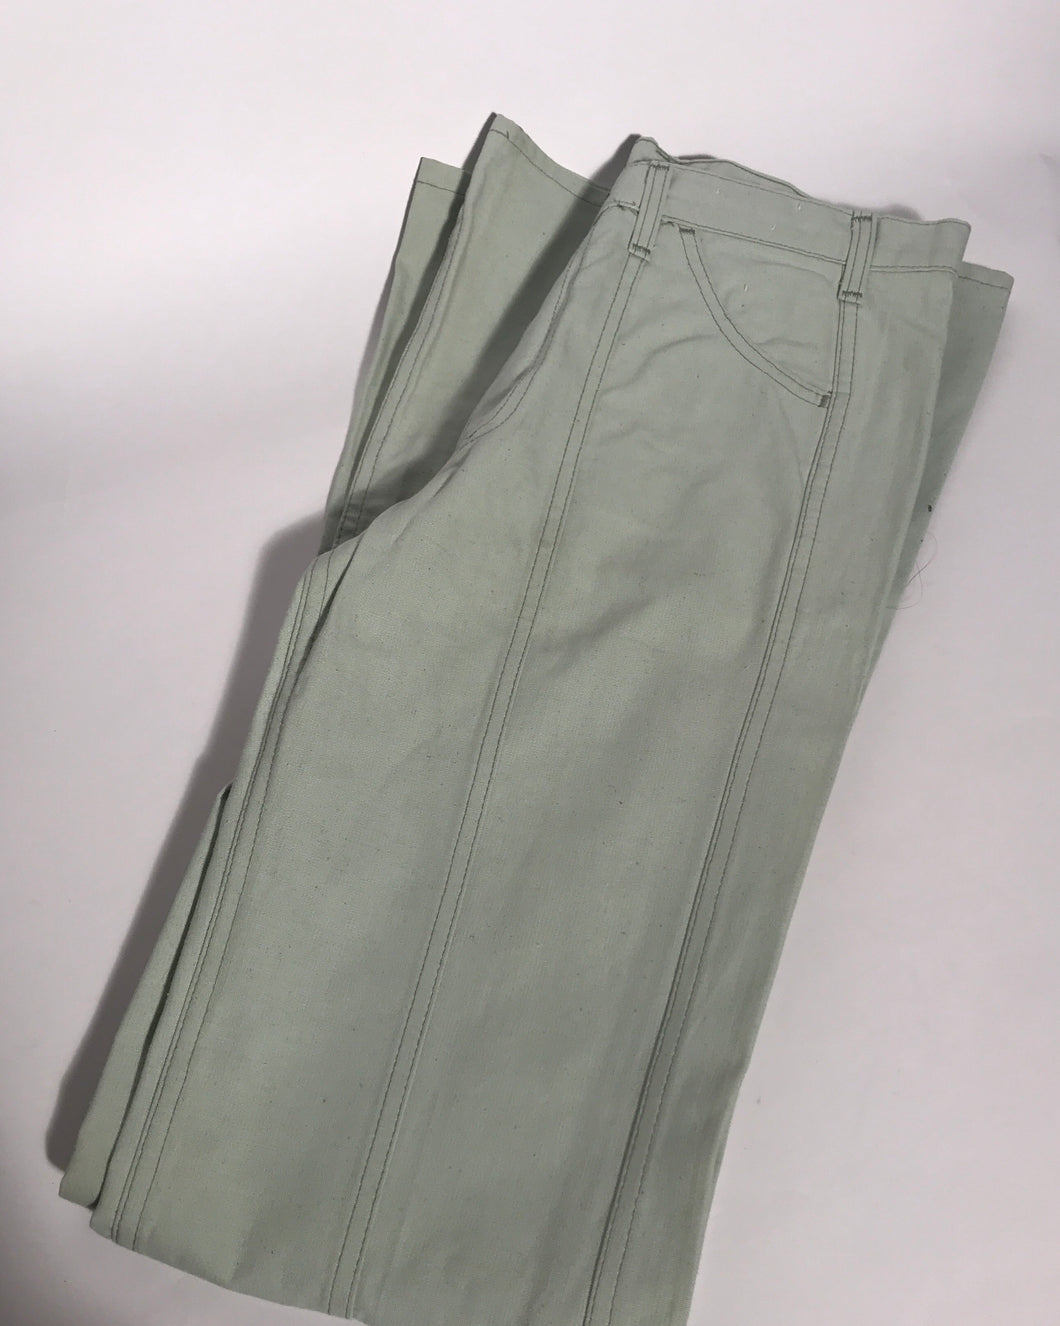 Deadstock Vintage 1970s Levis Light Green Bellbottom Jeans Extra Tall 34